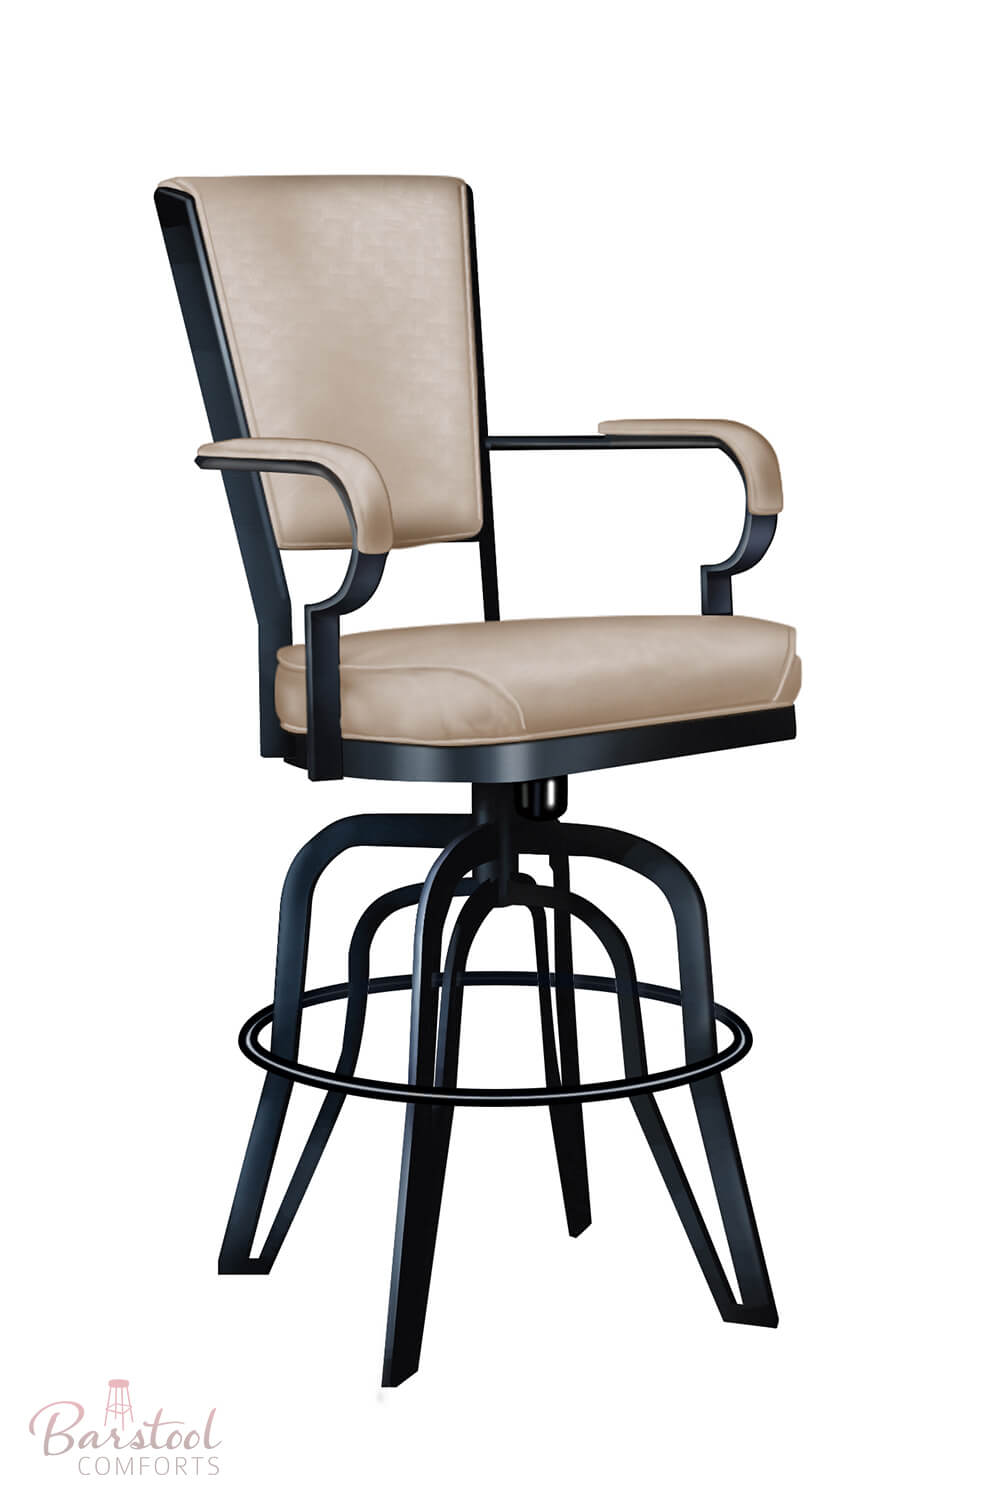 Brilliant Lisa Furniture 2545 Rocking Tilt Swivel Bar Stool Alphanode Cool Chair Designs And Ideas Alphanodeonline